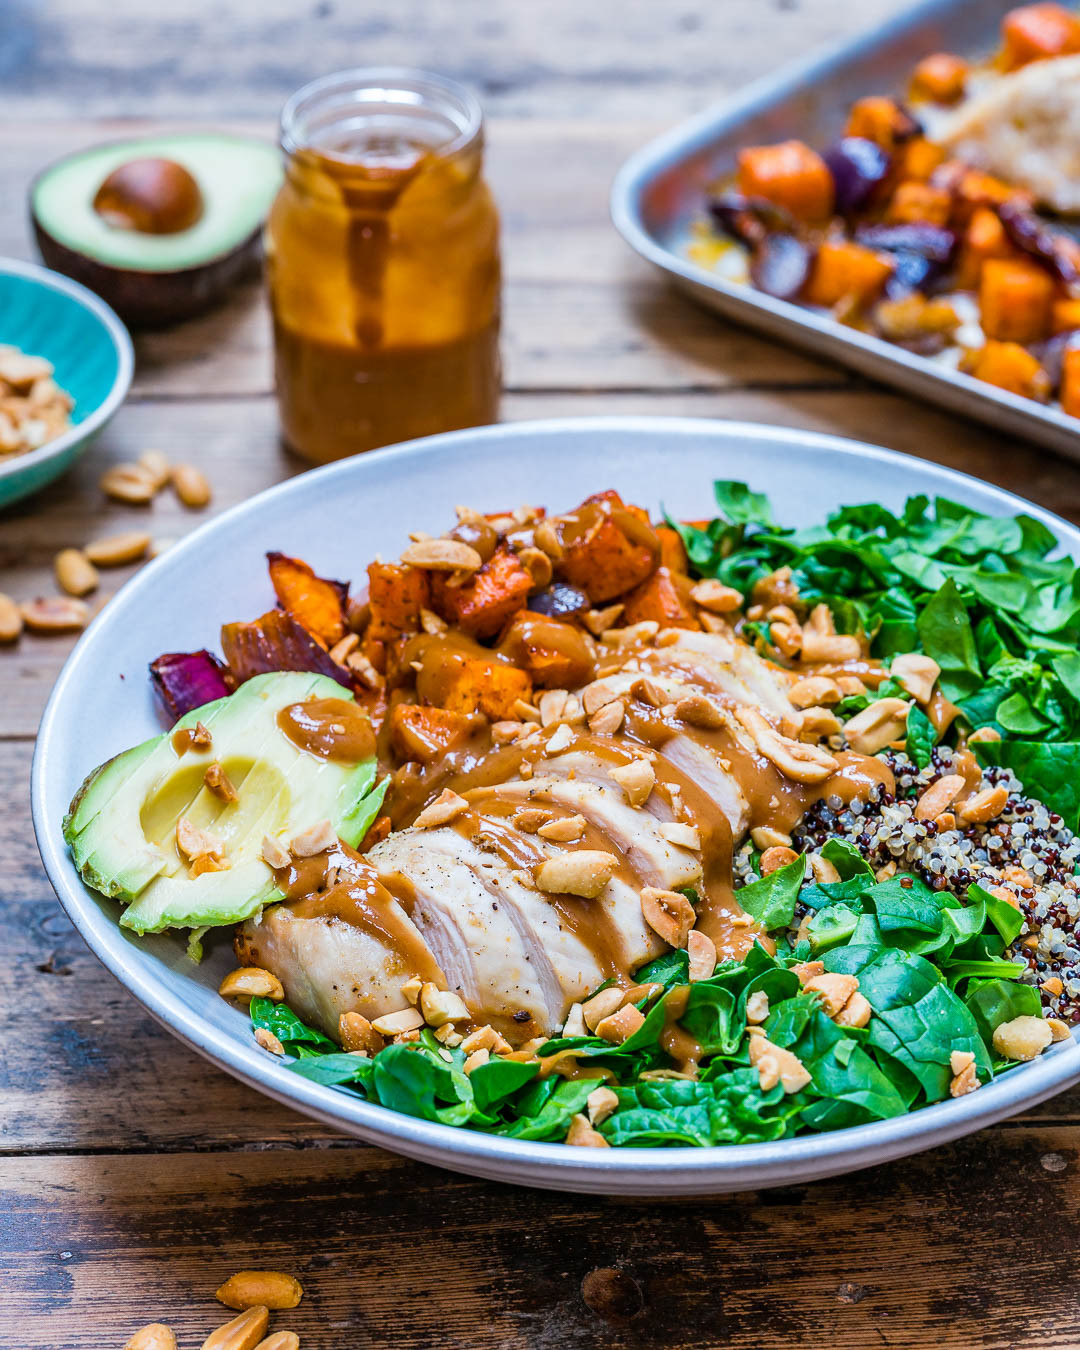 Chicken And Quinoa Recipe Healthy  Healthy Chicken Salad With Quinoa And Roasted Veggies